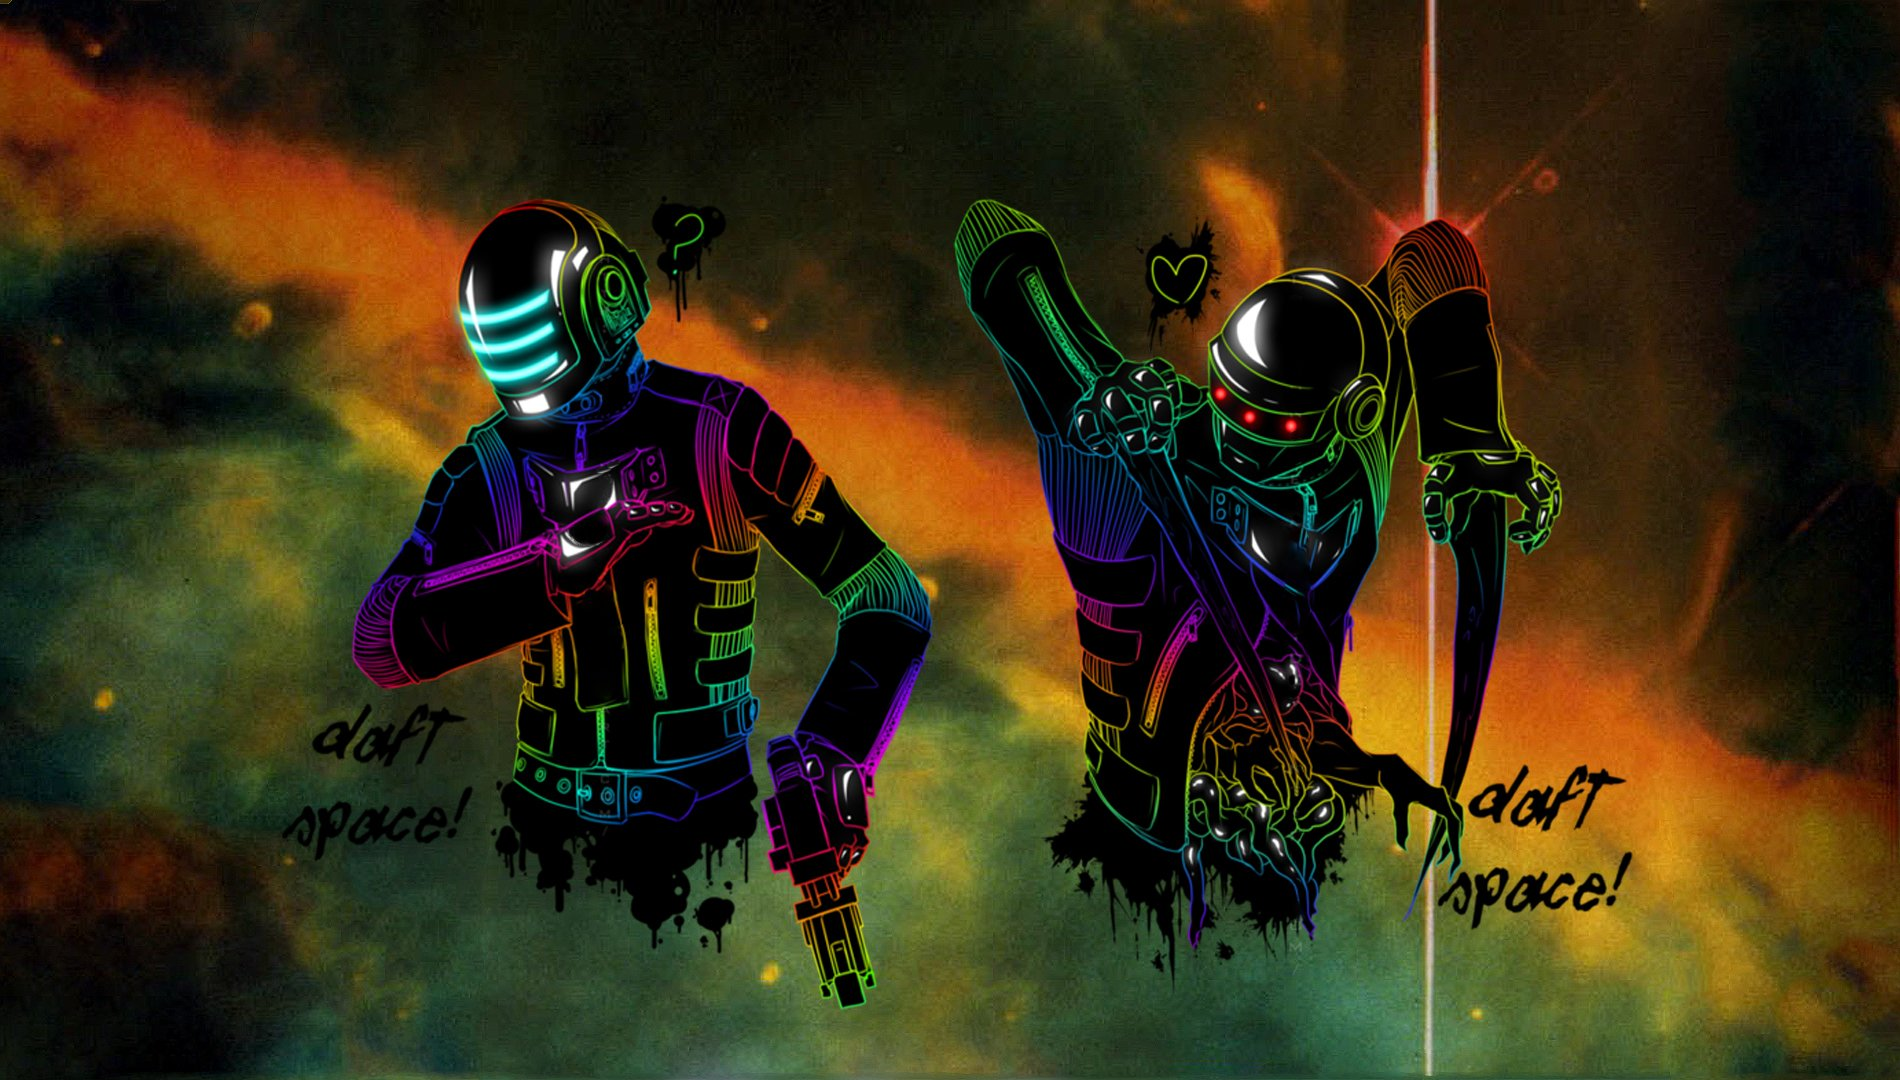 Daft Punk Wallpaper and Background Image | 1900x1080 | ID ...